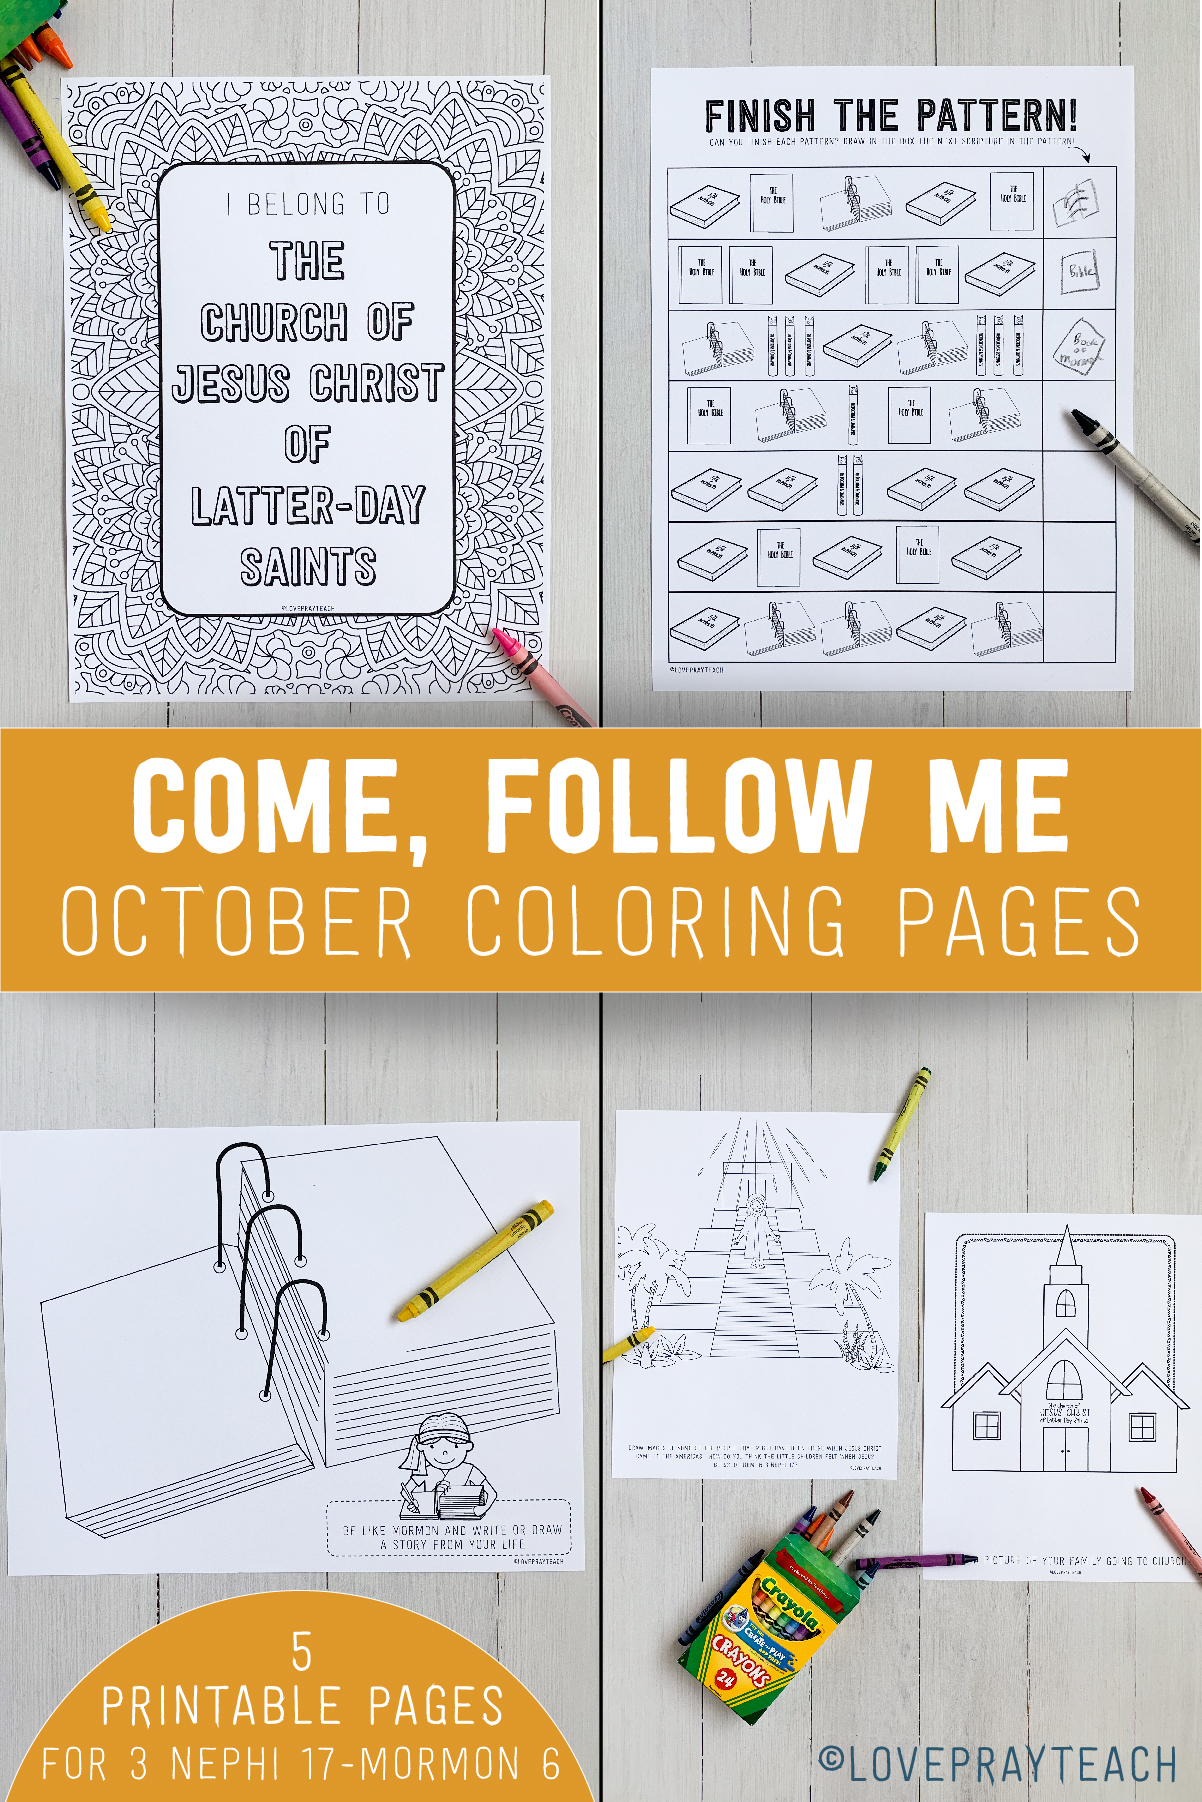 October 2020 Book of Mormon Coloring Pages www.LovePrayTeach.com